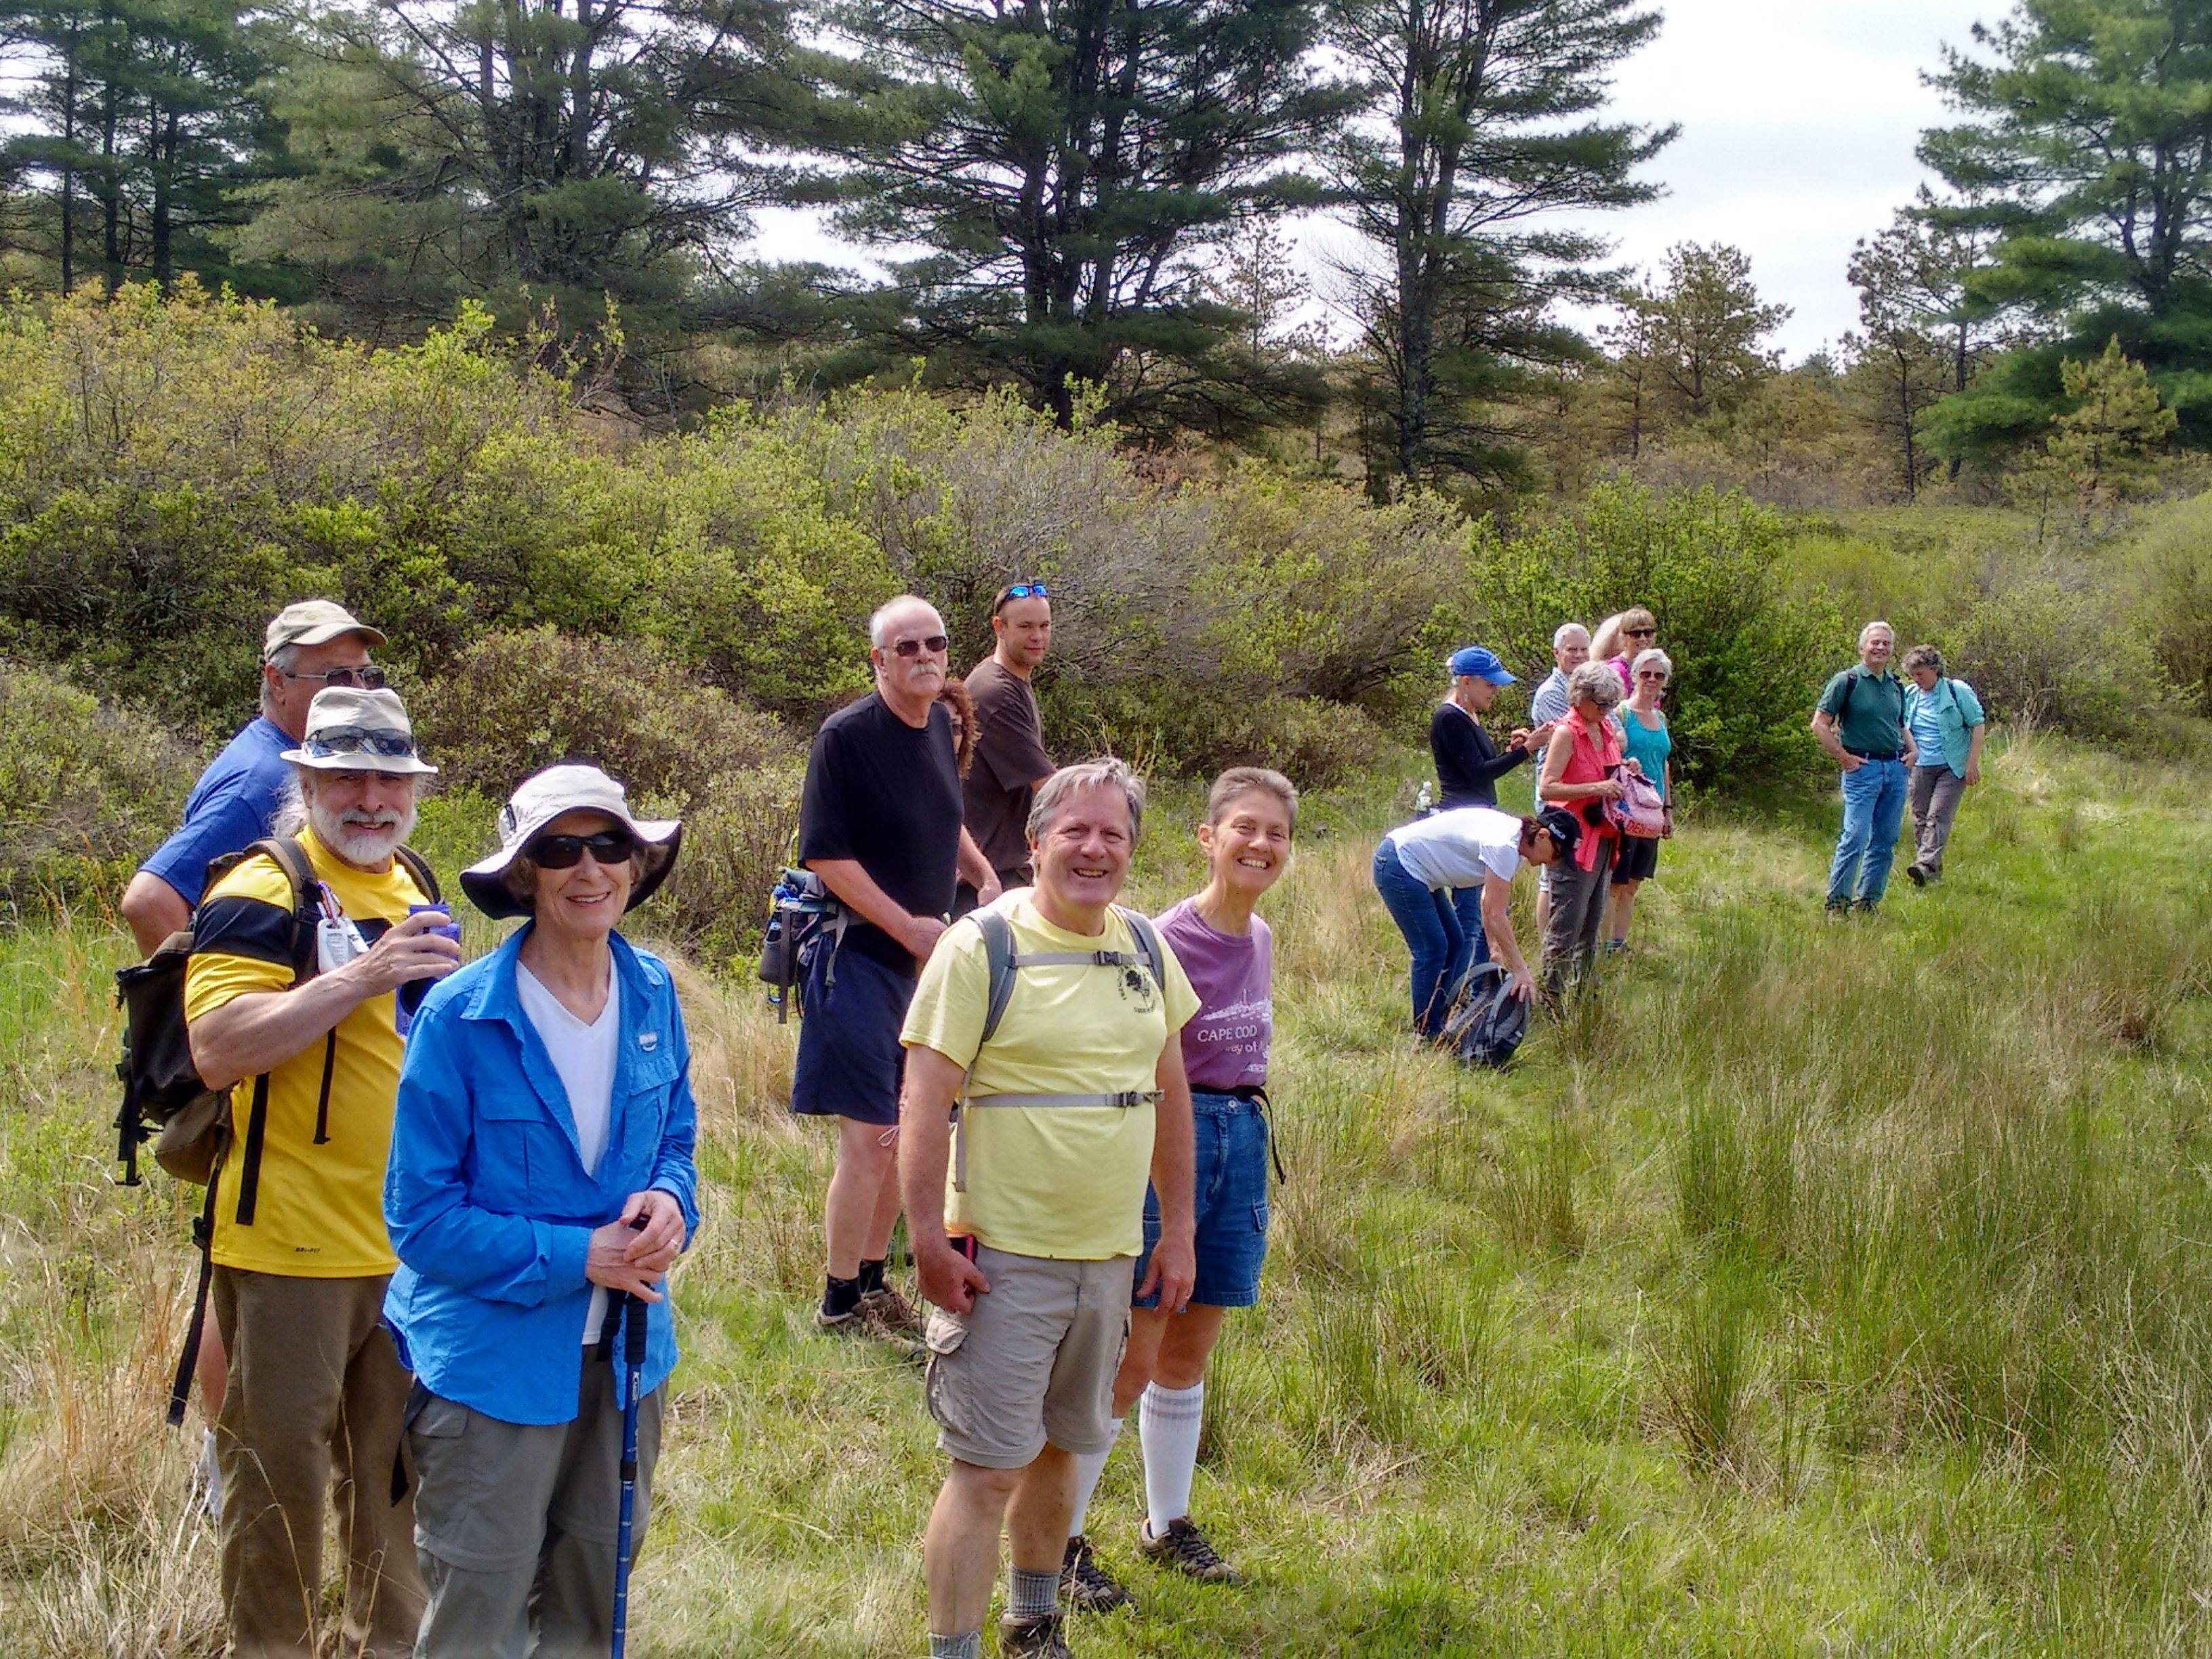 Myles Standish State Forest Meetup Group